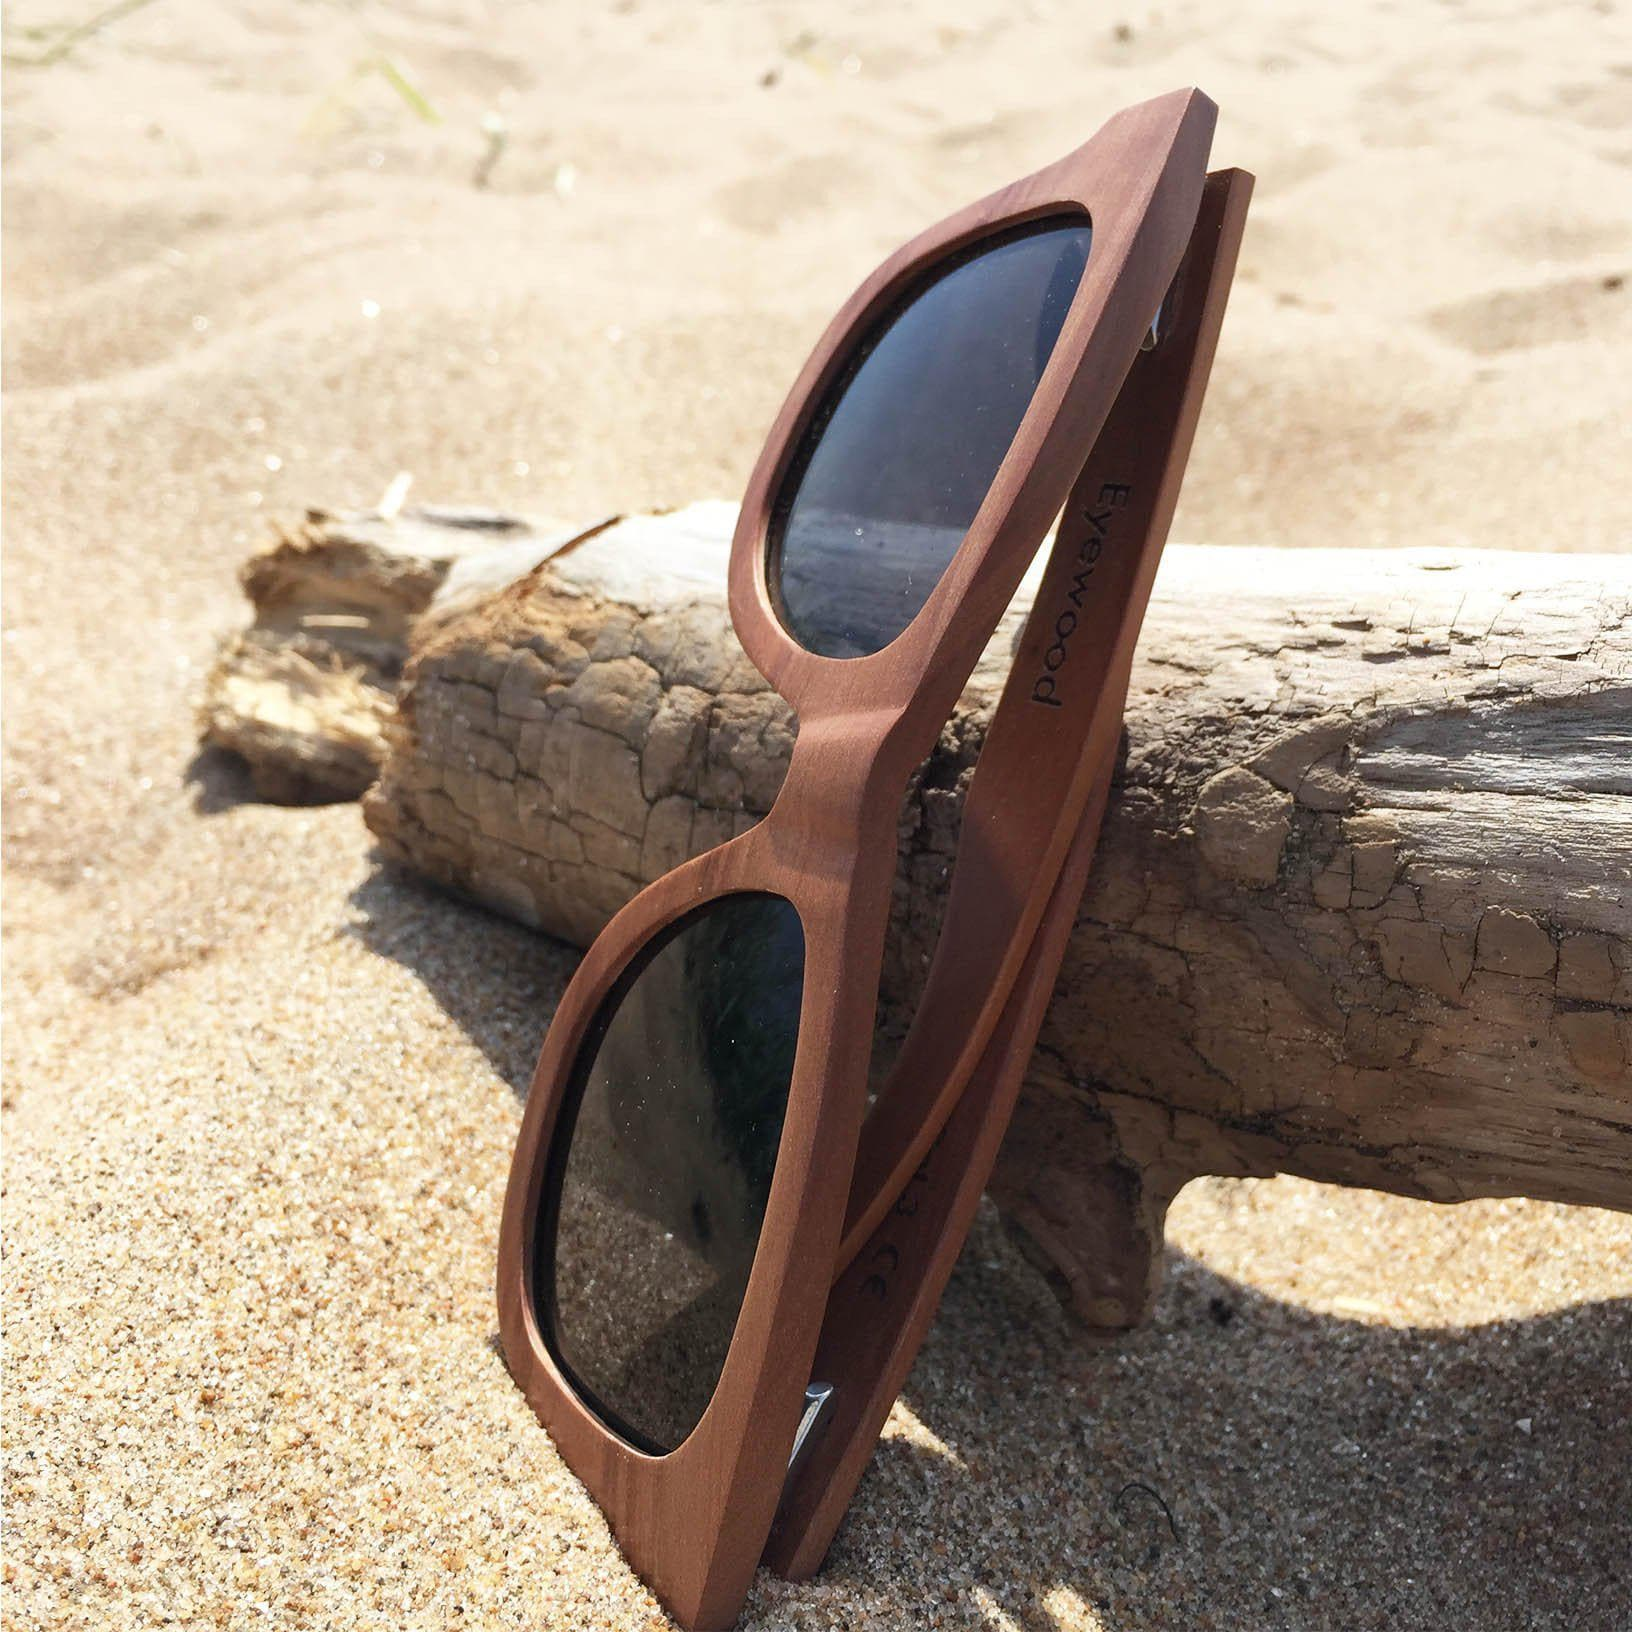 Eyewood Wayfarer - Wade - All wooden sunglasses on the beach